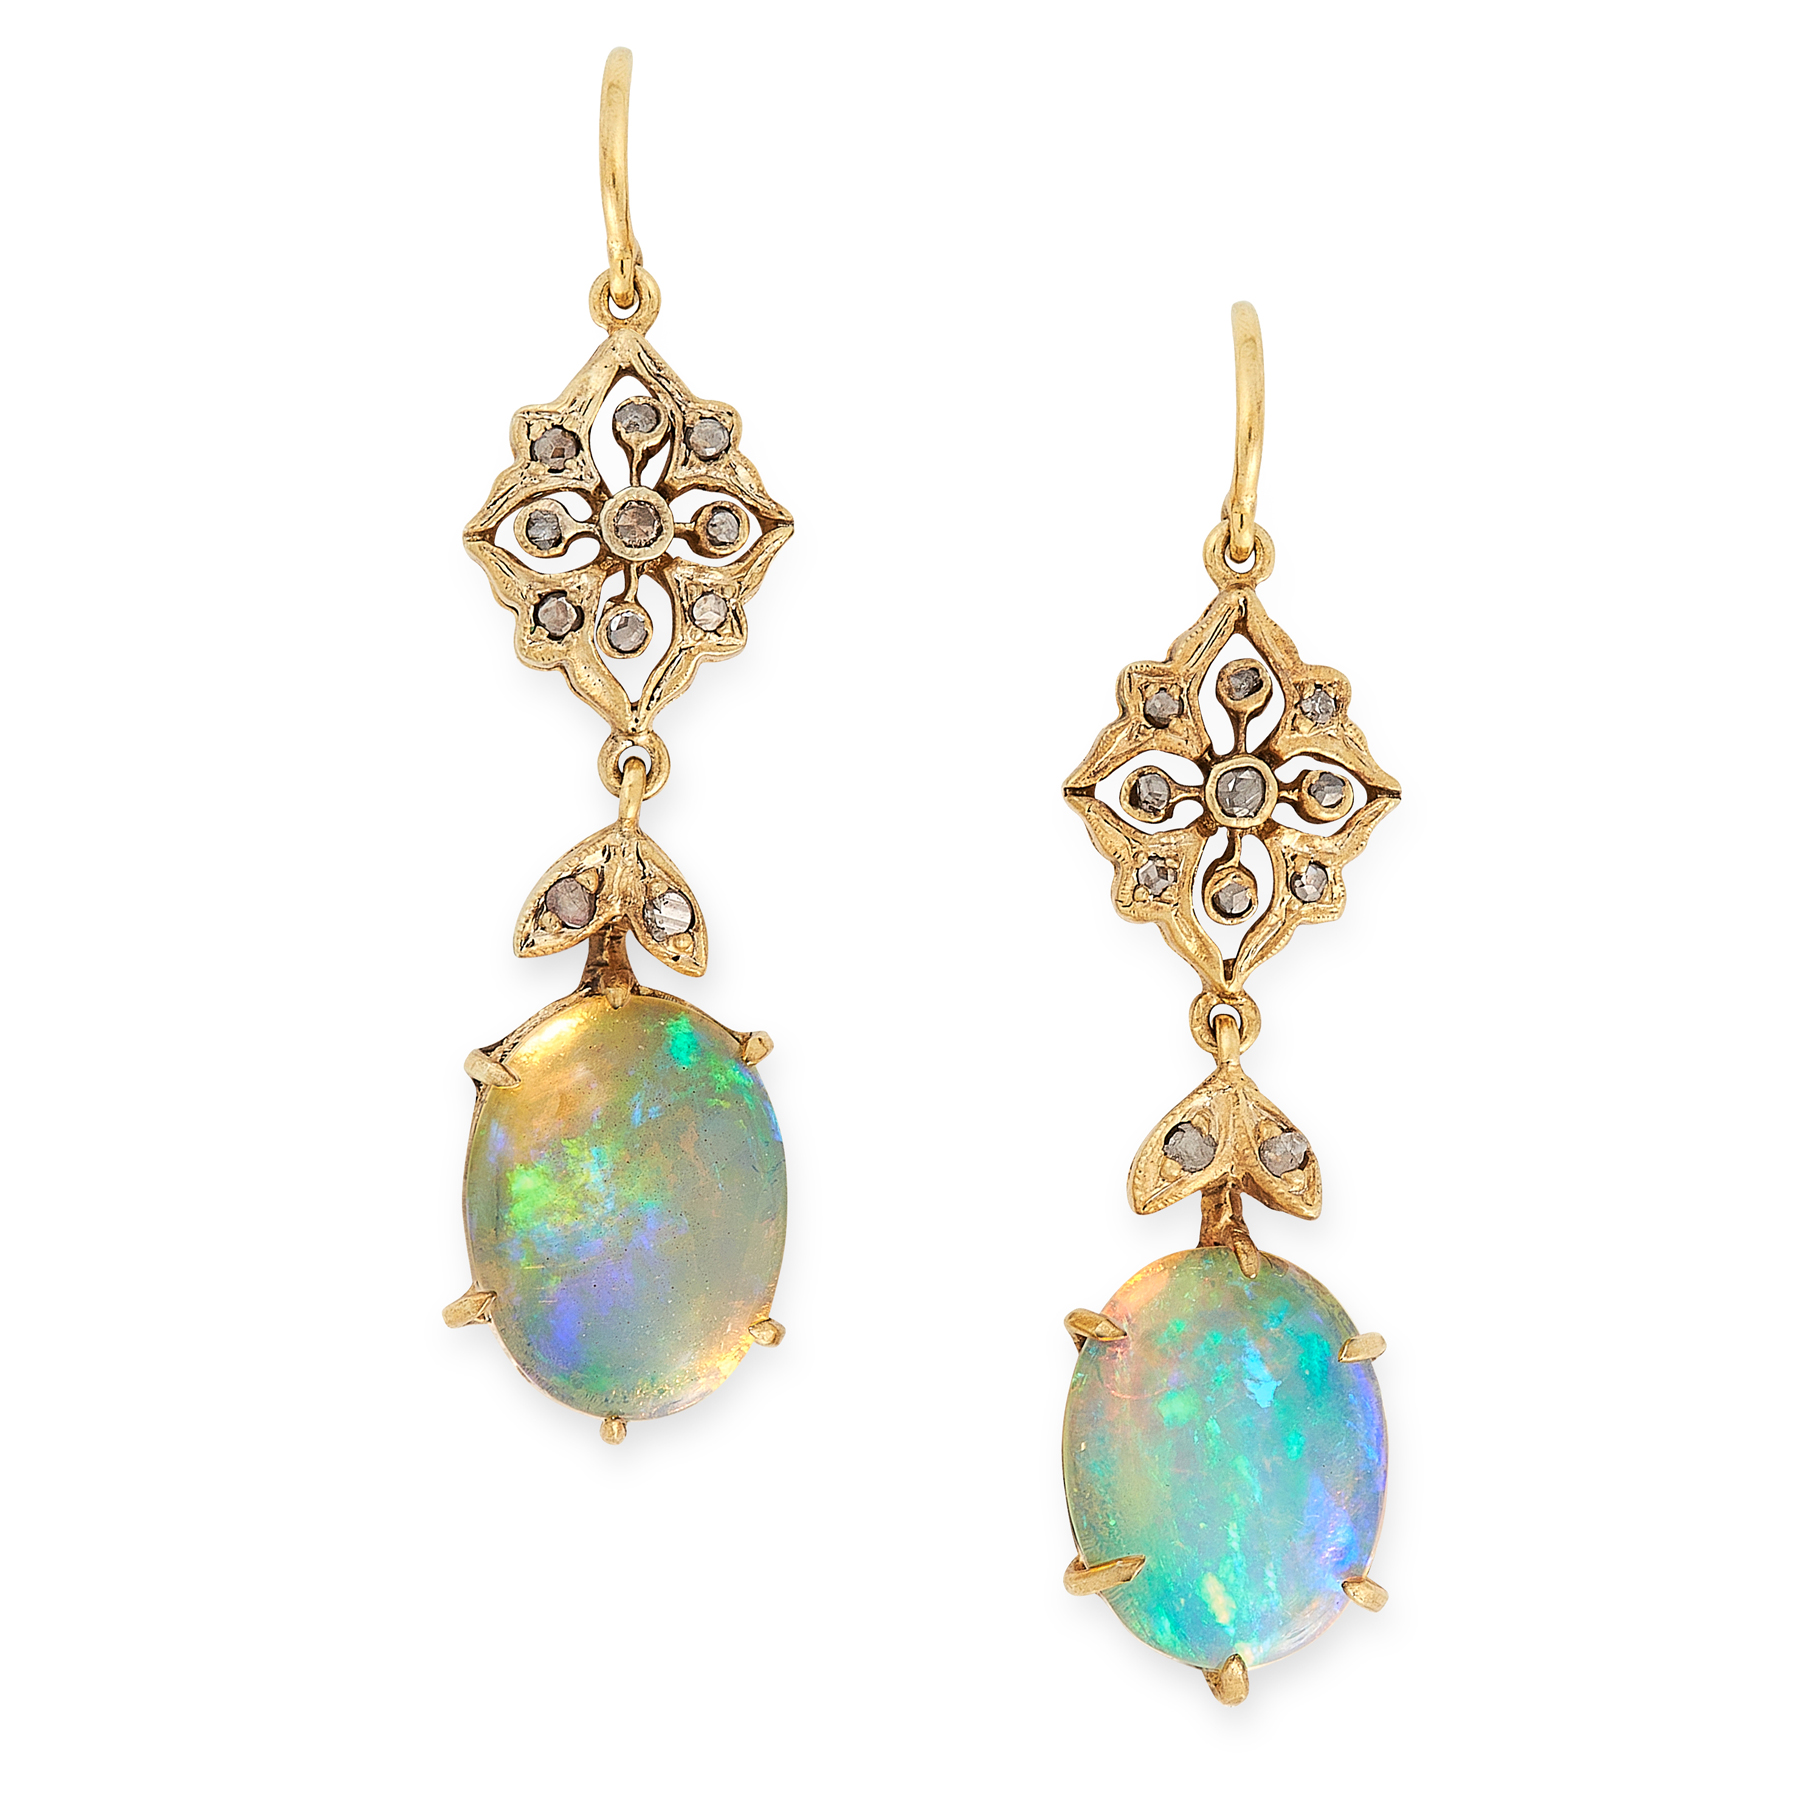 A PAIR OF OPAL AND DIAMOND DROP EARRINGS each set with an oval cabochon opal suspended below foliate